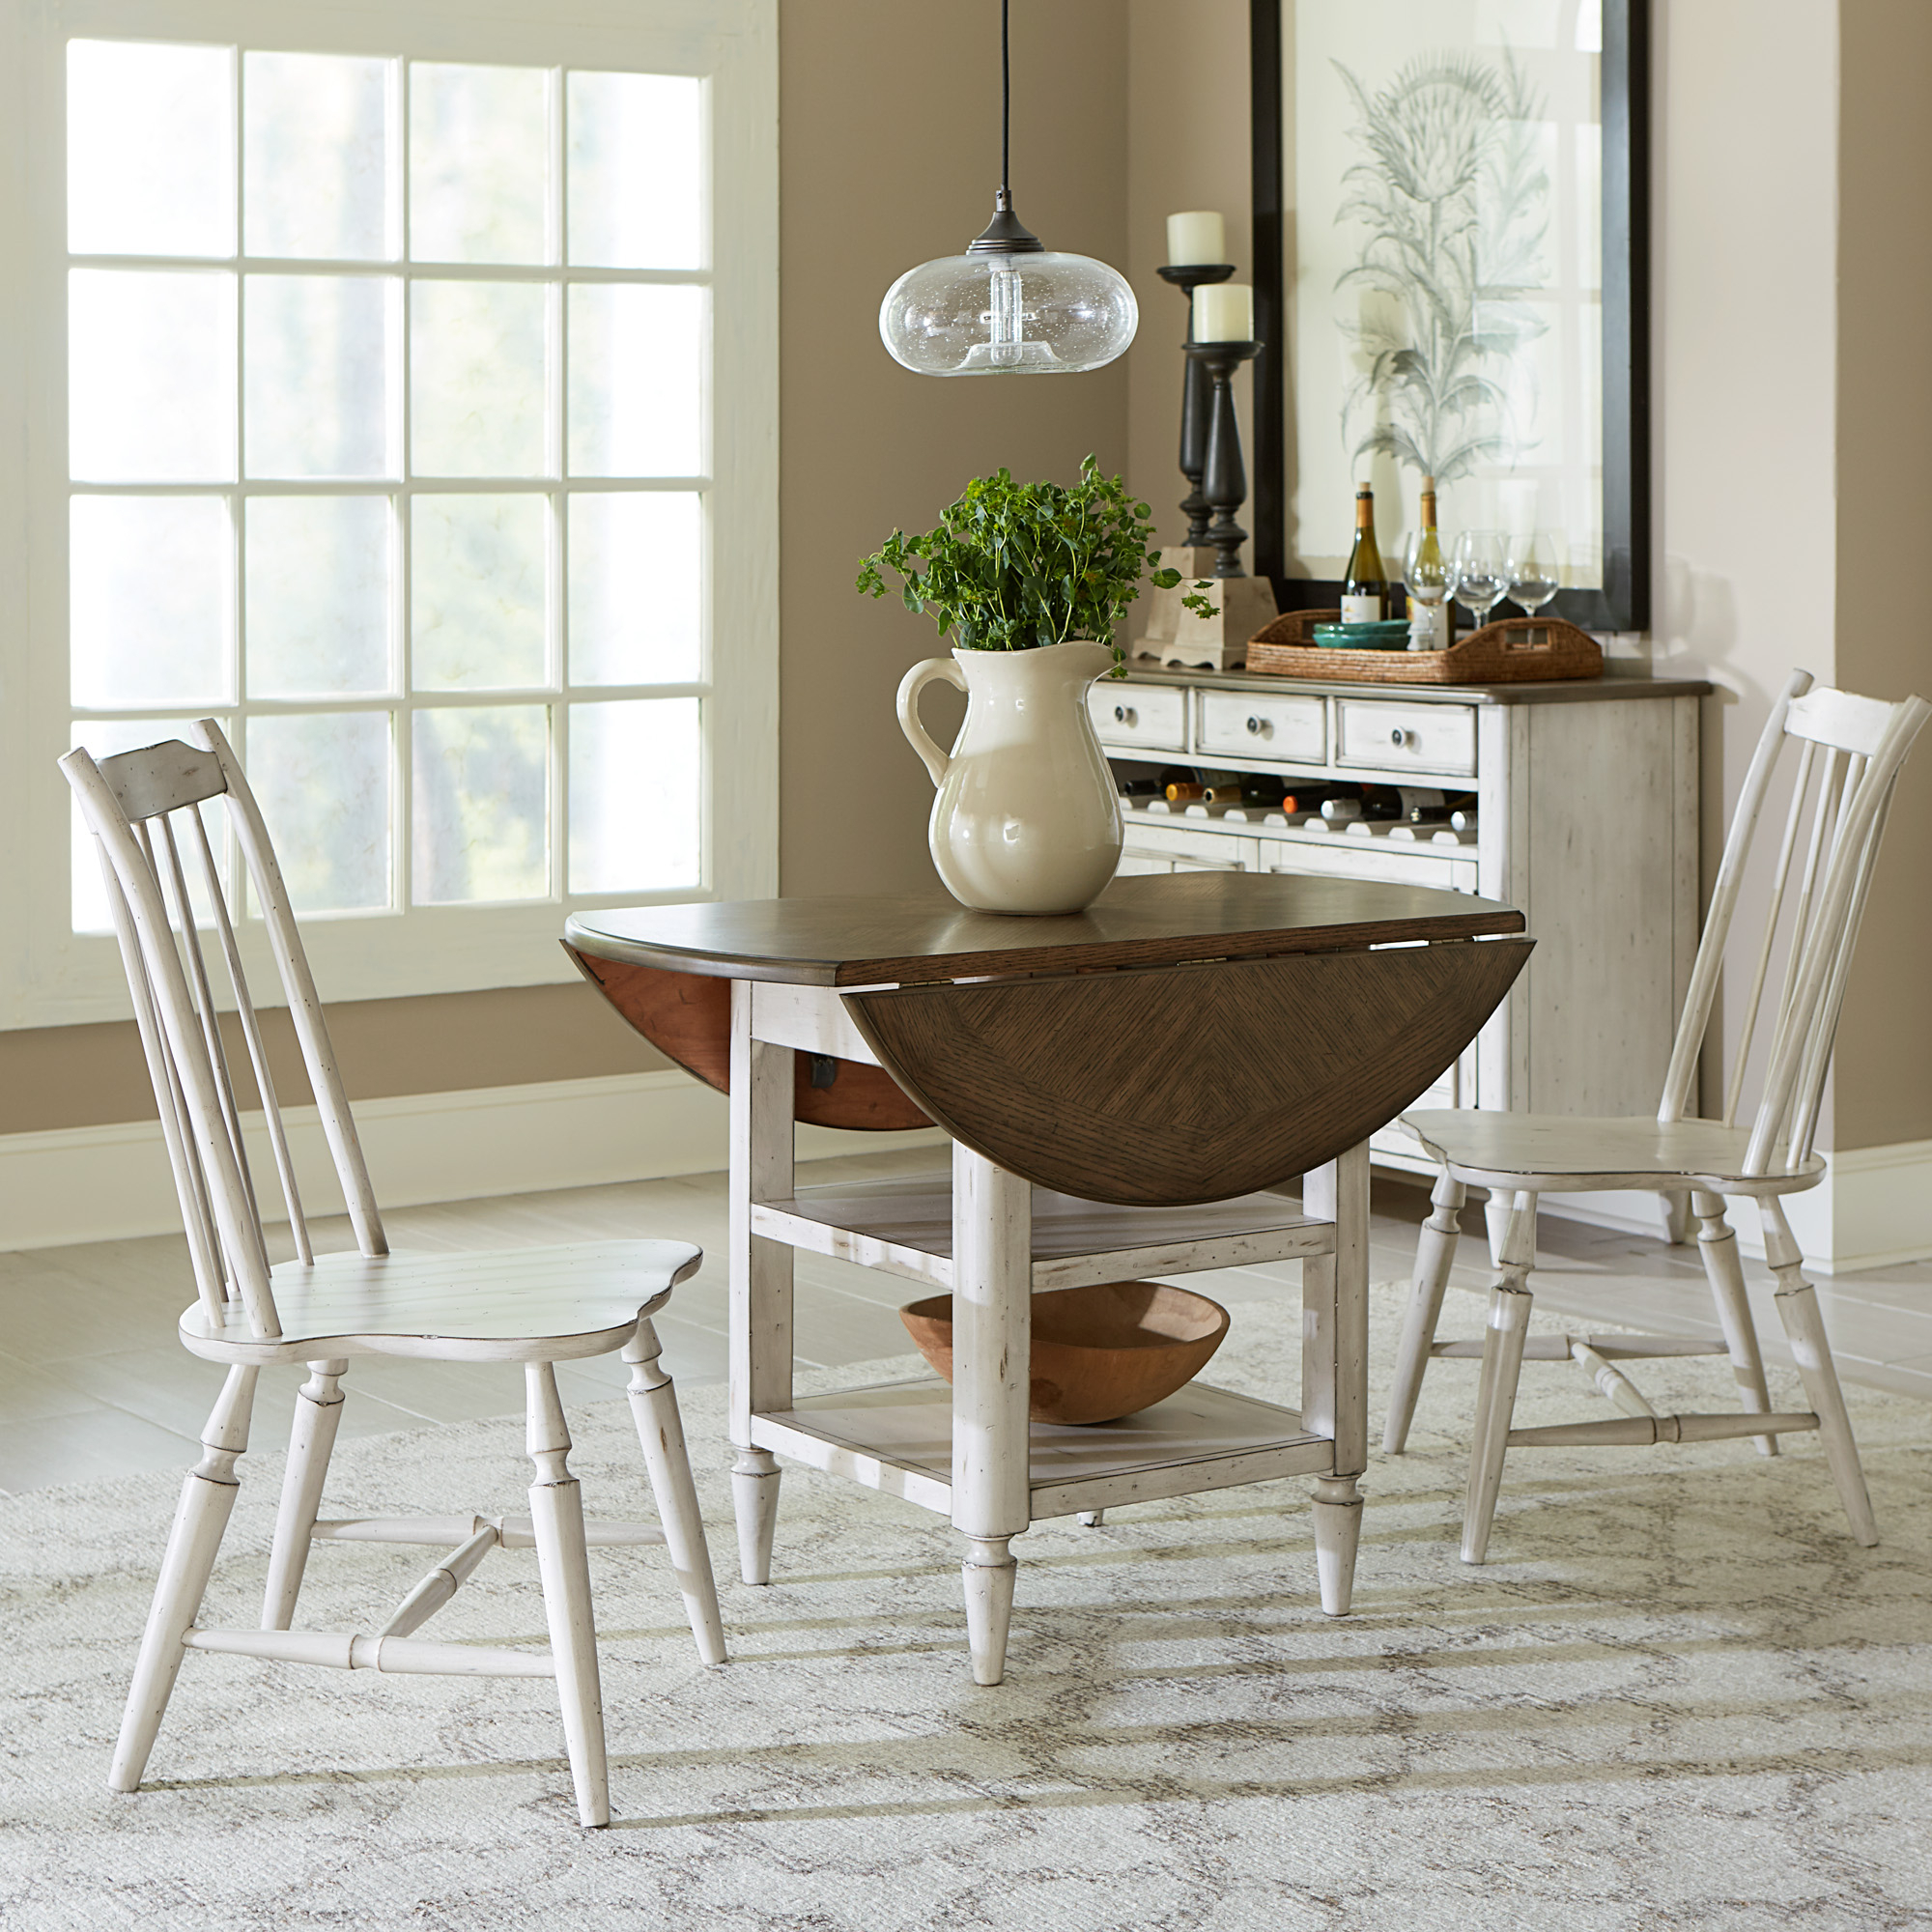 Current Dining Room Sets, Dining Room Furniture (Gallery 4 of 20)